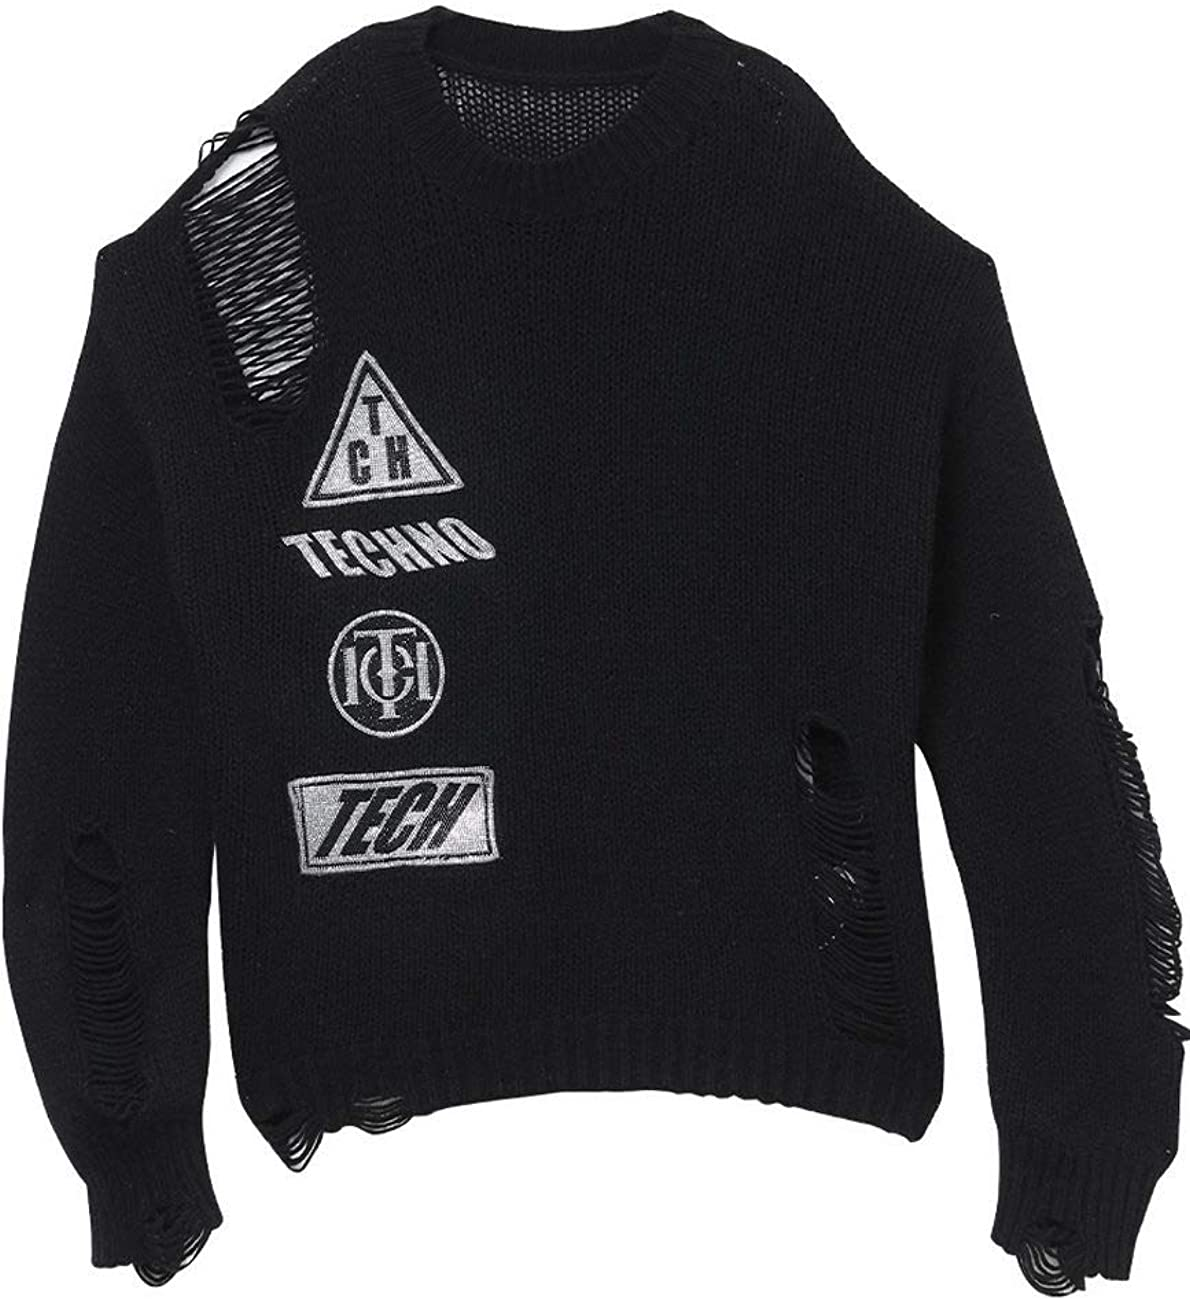 Hole Tide Brand Casual Sweater Knitted Sweater T204093008